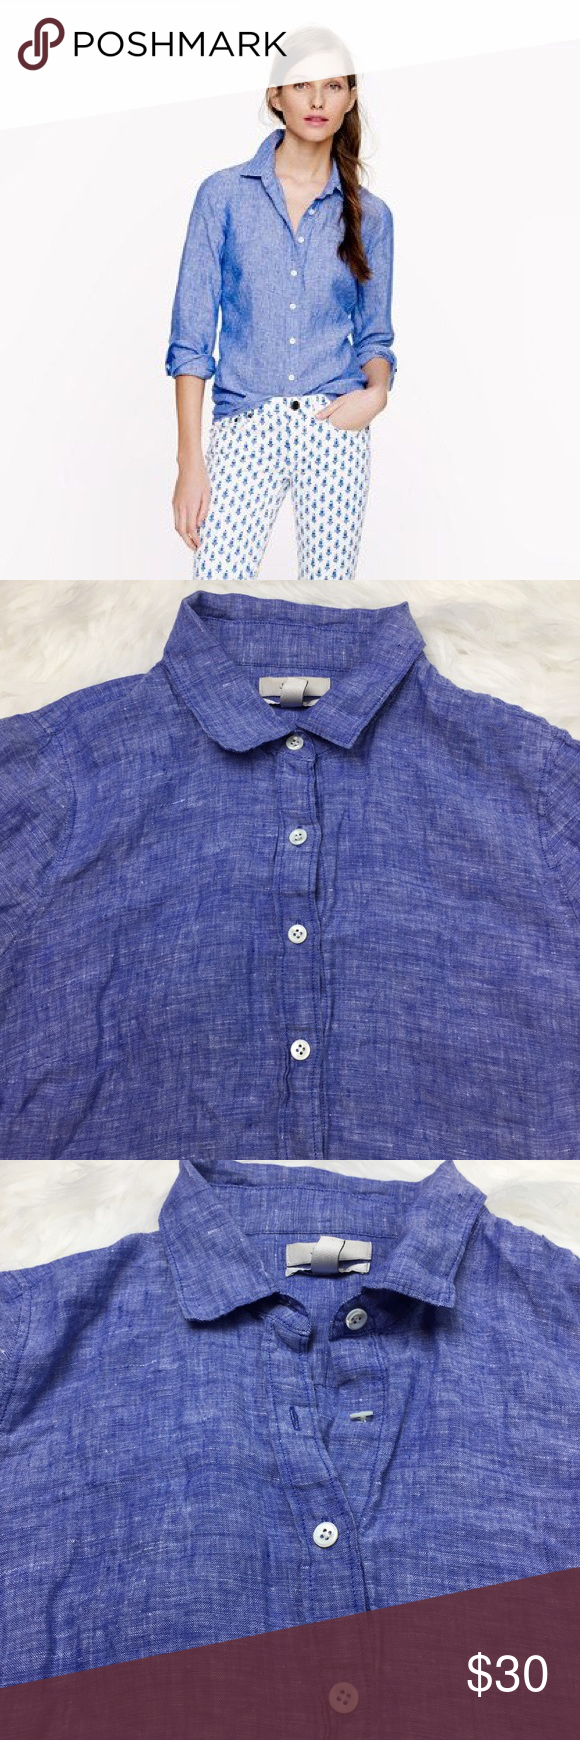 606cbc57 J. Crew The Perfect Shirt J. Crew Perfect shirt in crosshatch linen. Blue  Button Up accented with white buttons. Offers Accepted J. Crew Tops Button  Down ...